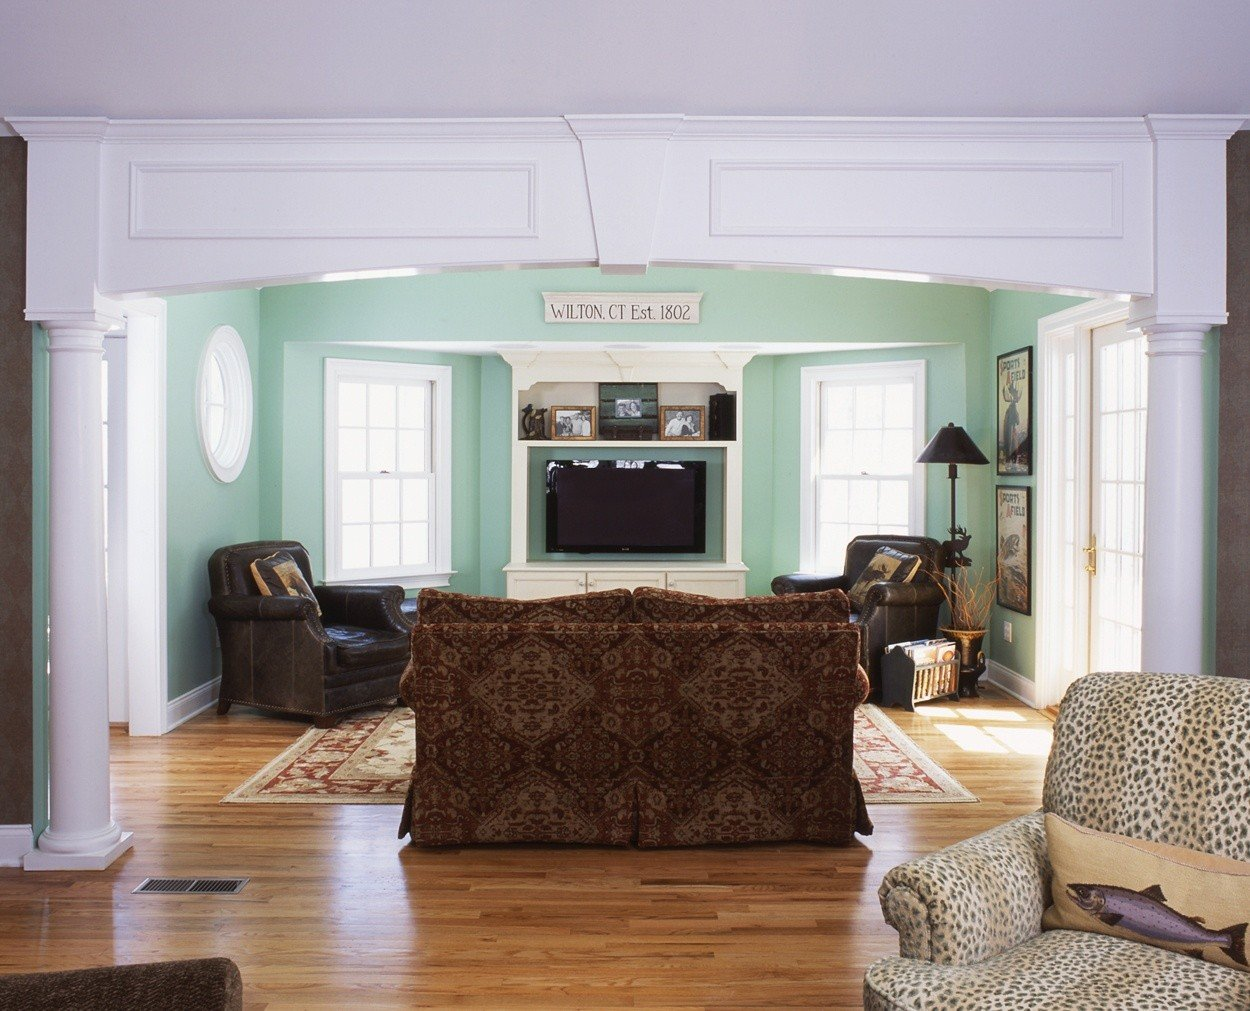 arched detailing and columns highlight the entrance to this media room